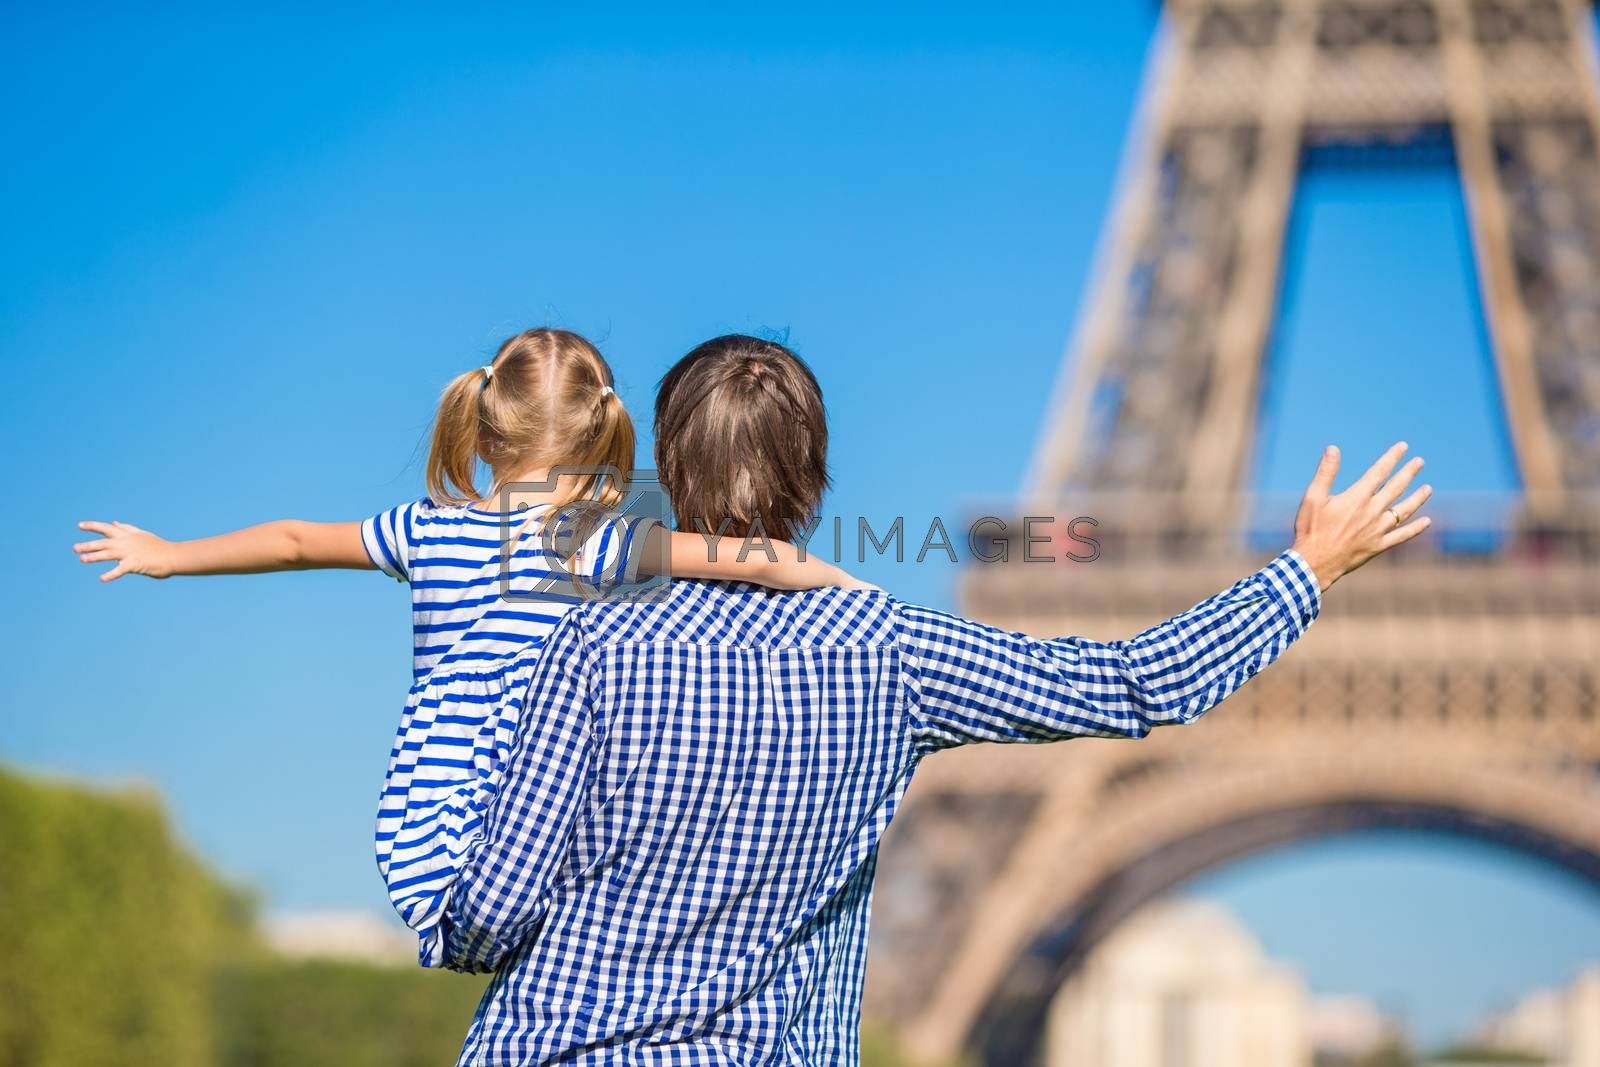 French summer holidays, travel and people concept - happy family in Paris background Eiffel Tower by travnikovstudio